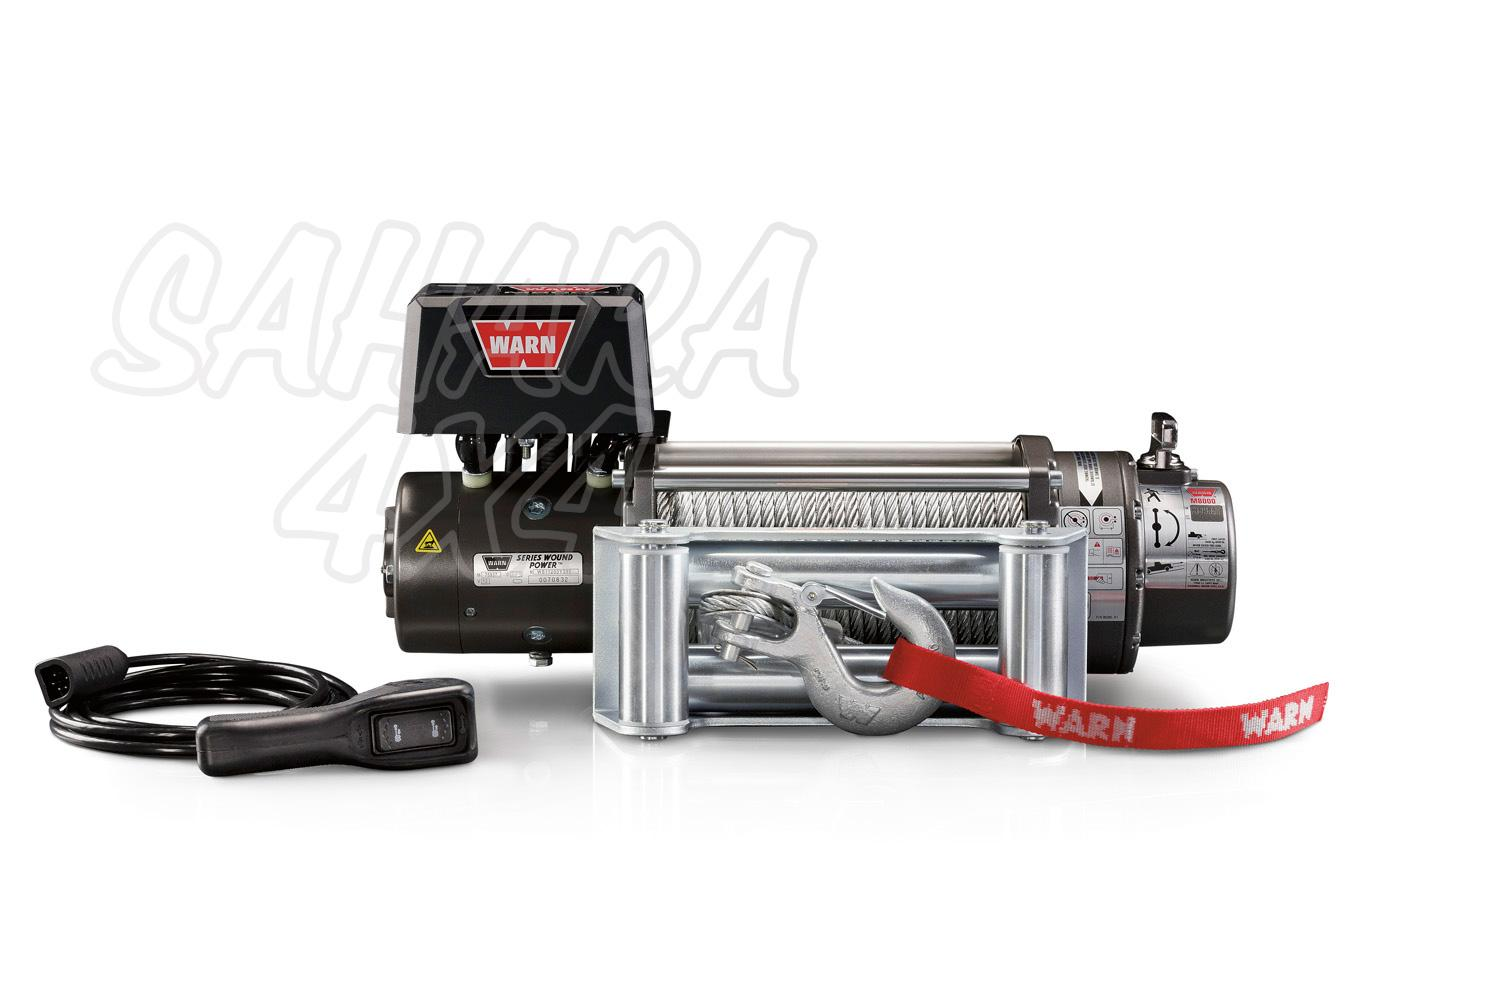 hight resolution of warn winch m8000 24v 3600 kg compact tough and reliable